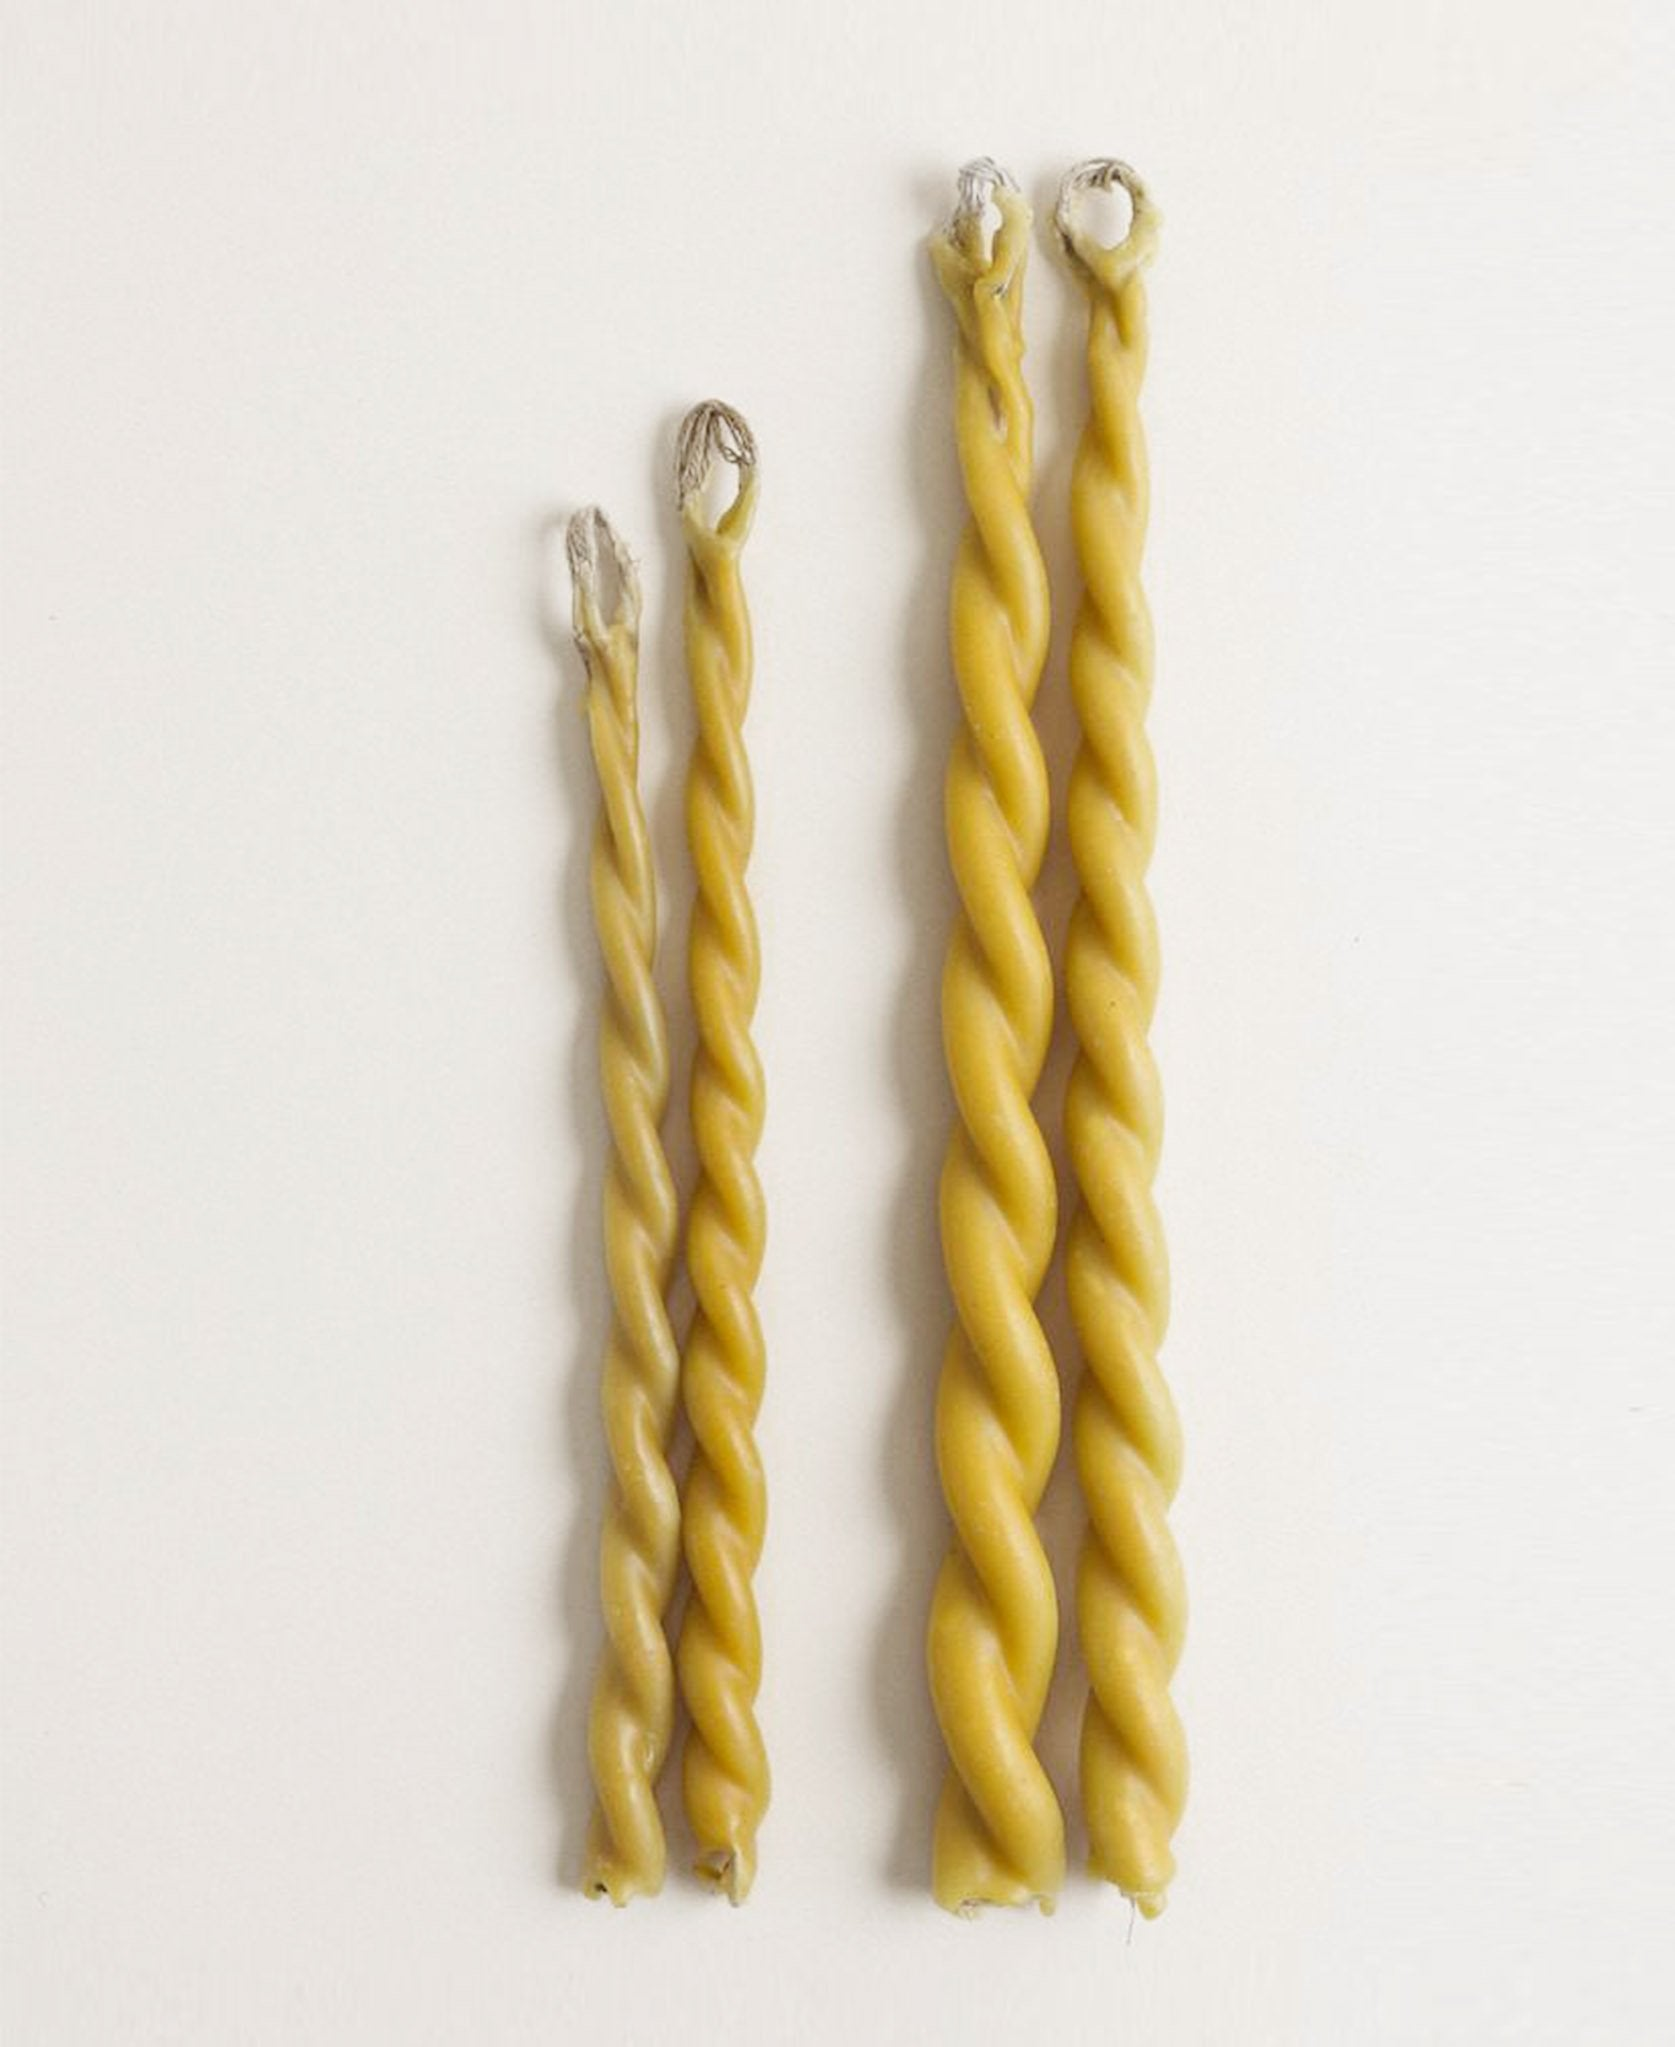 twisted yellow candles